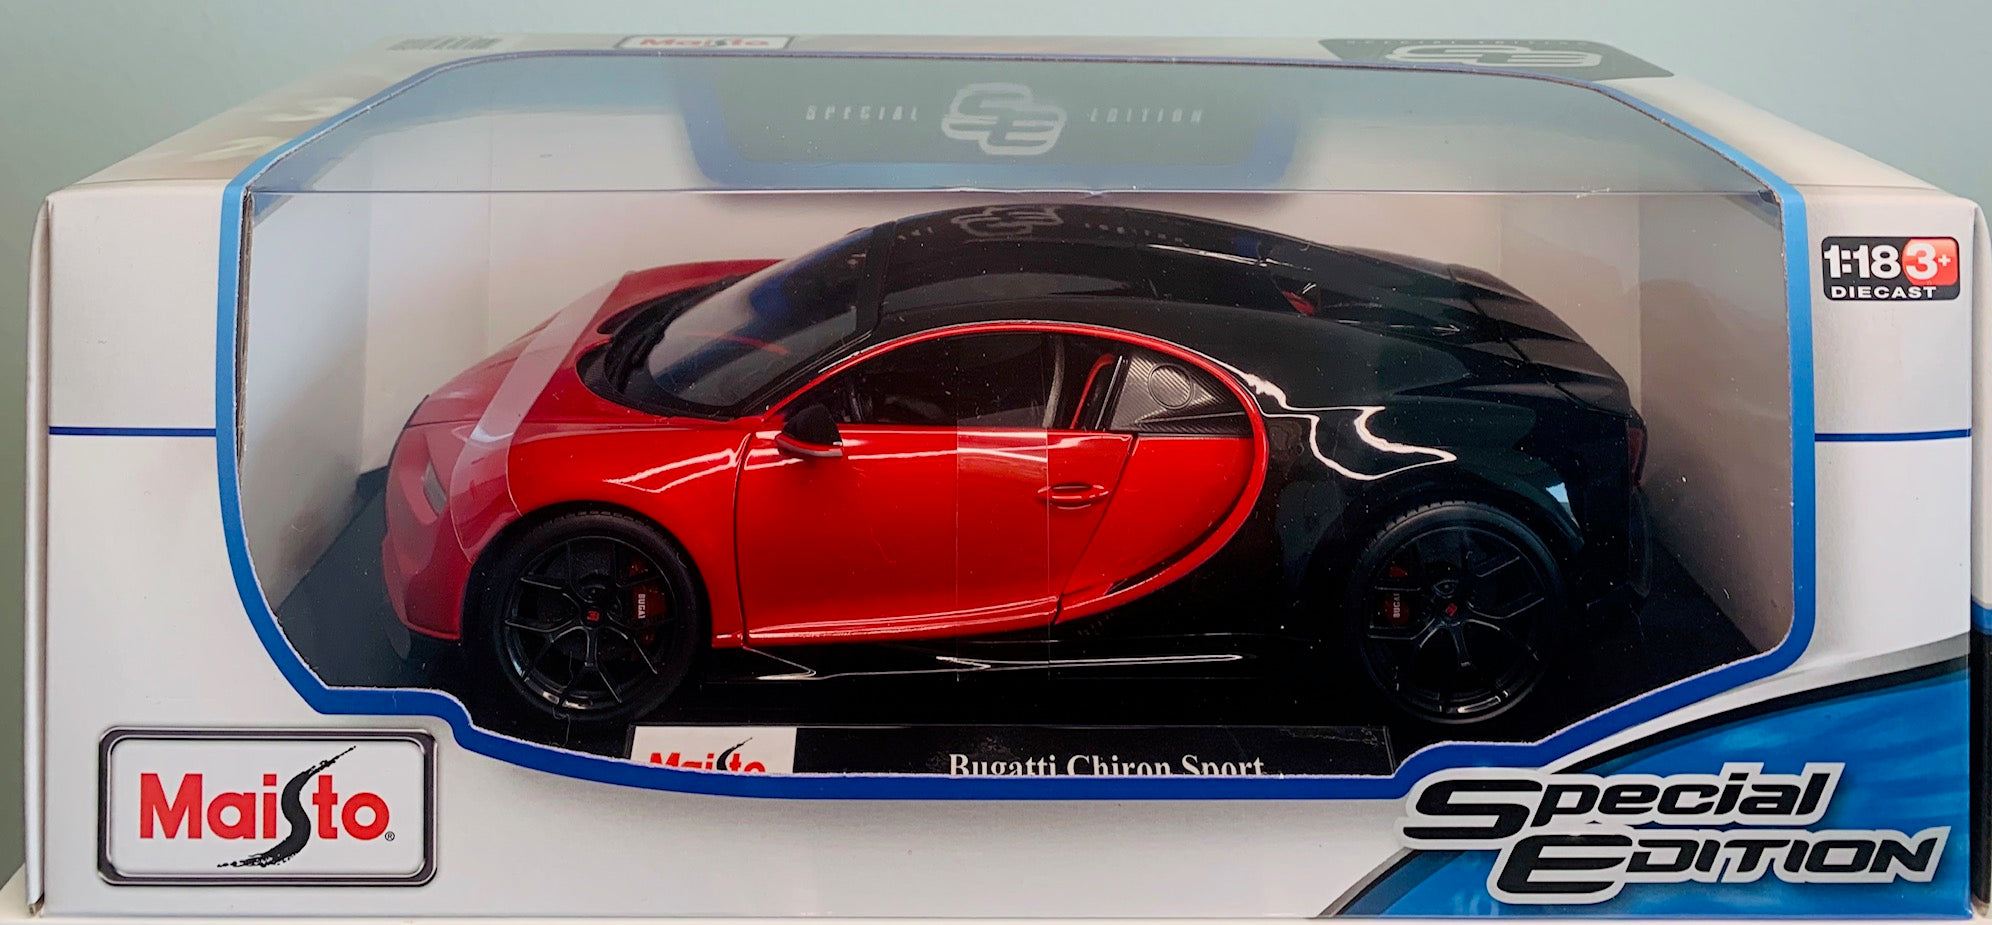 Maisto Bugatti Chiron Sport Red 1:18 Scale Car Special Edition